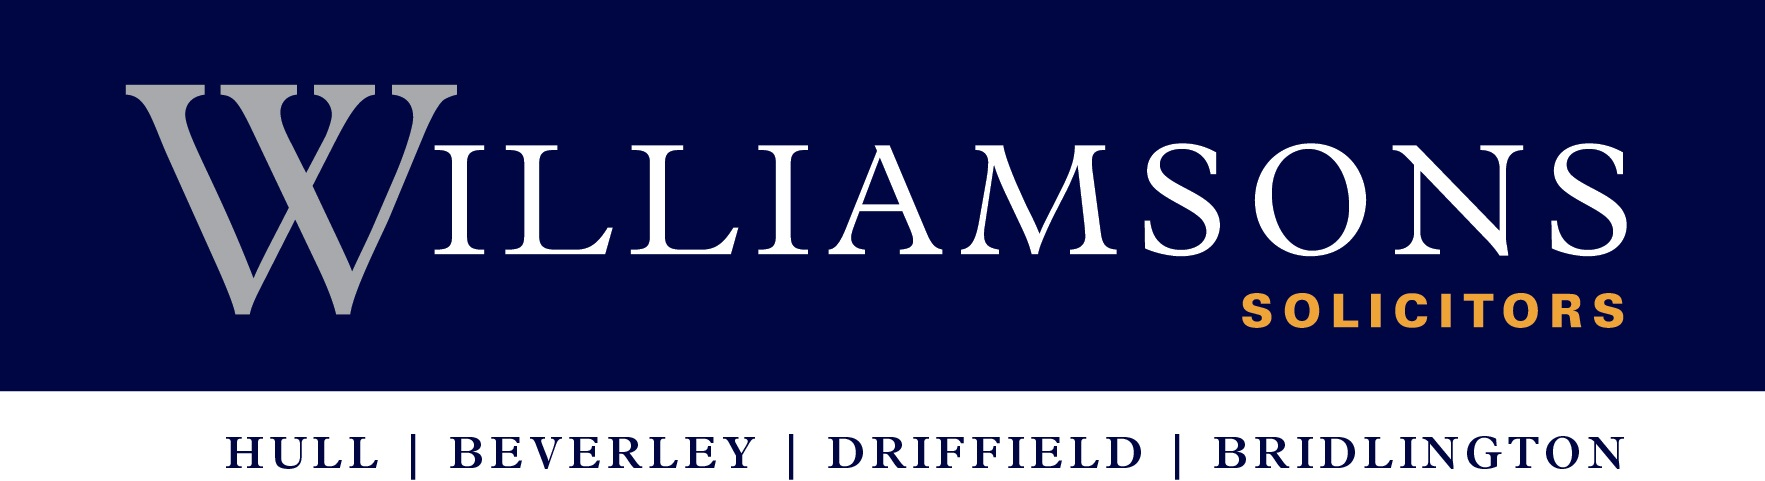 Read Williamsons Solicitors Reviews